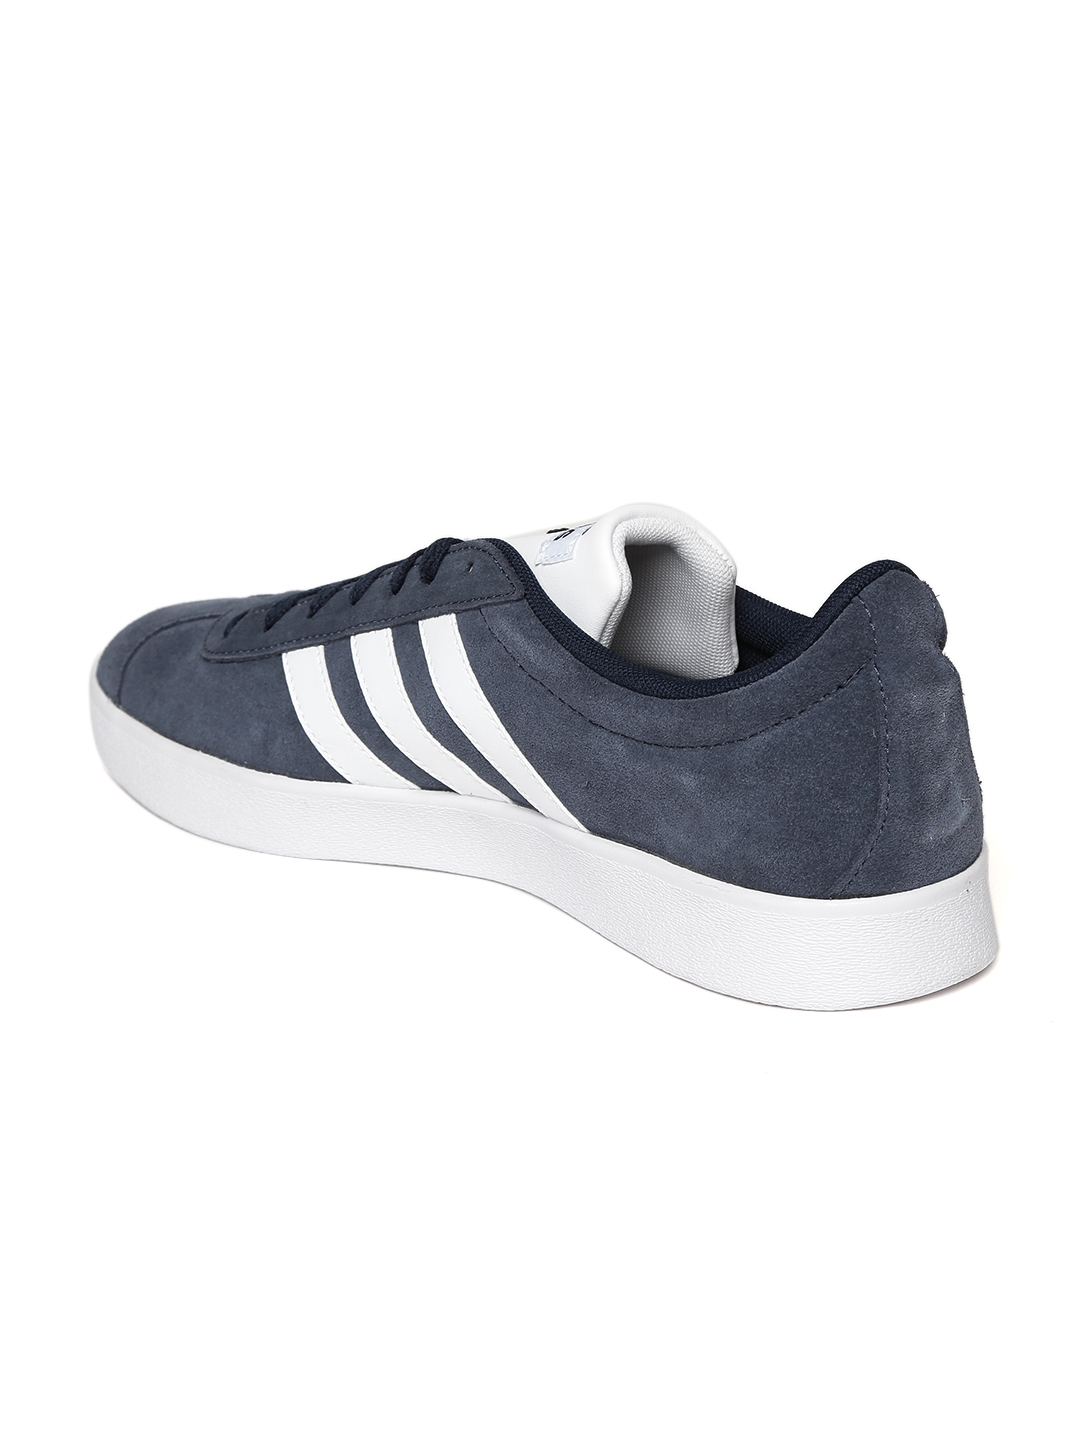 Buy ADIDAS Men Navy Blue VL COURT 2.0 Sneakers - Casual Shoes for ... 748fa7d92